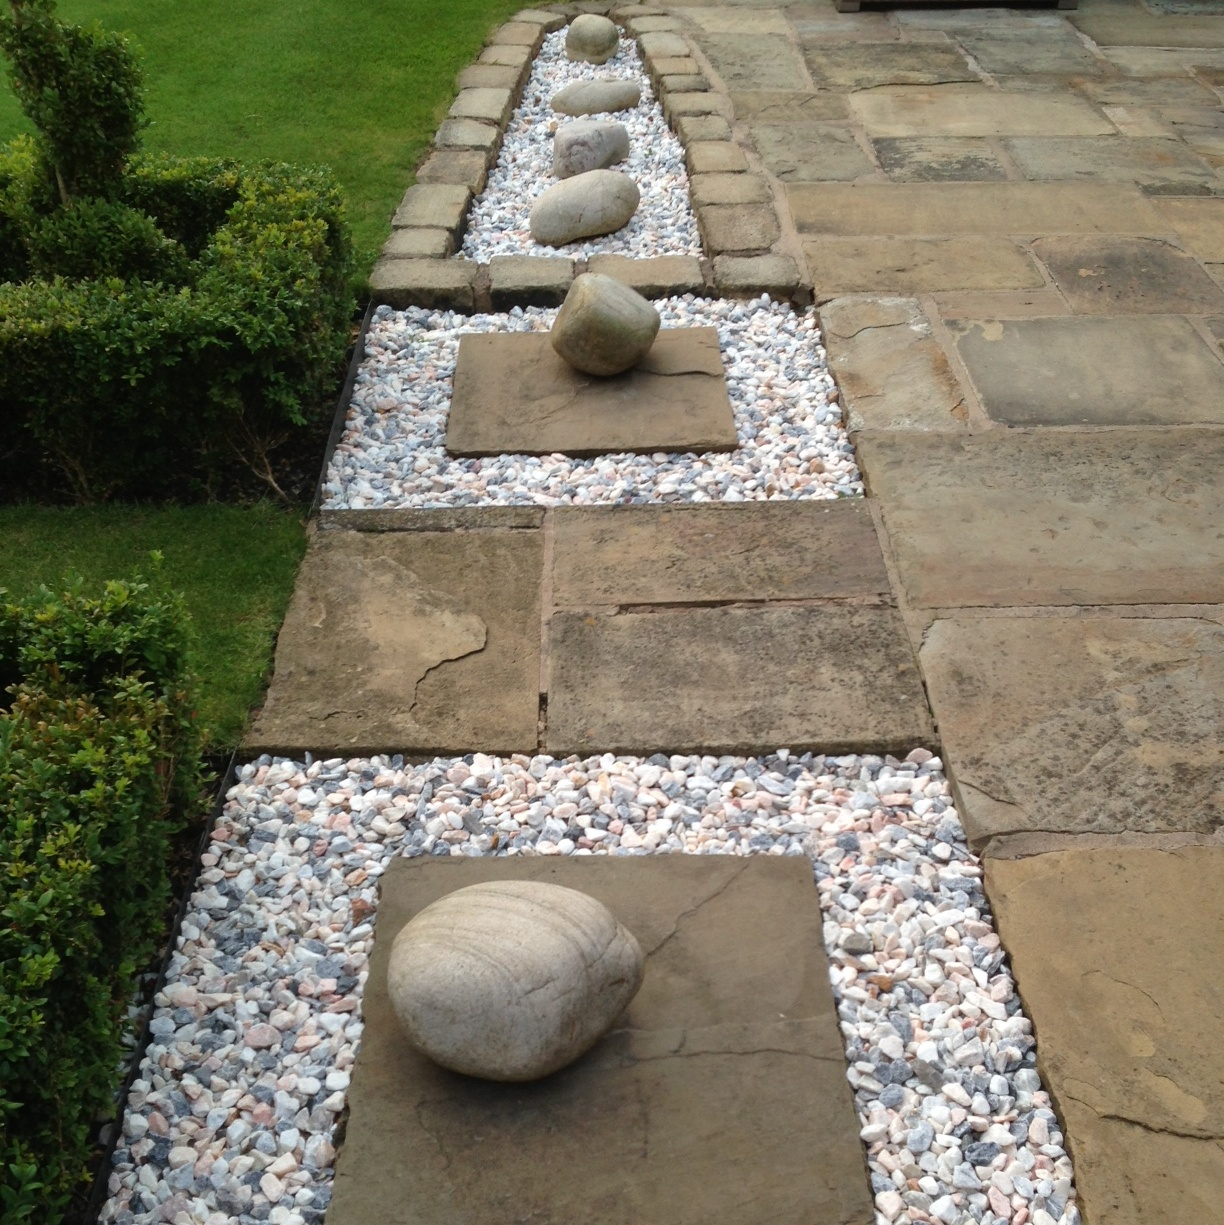 Coloured Stones For Gardens 20mm flamingo gravel buy gravels granites online flamingo welcome to stone garden company workwithnaturefo